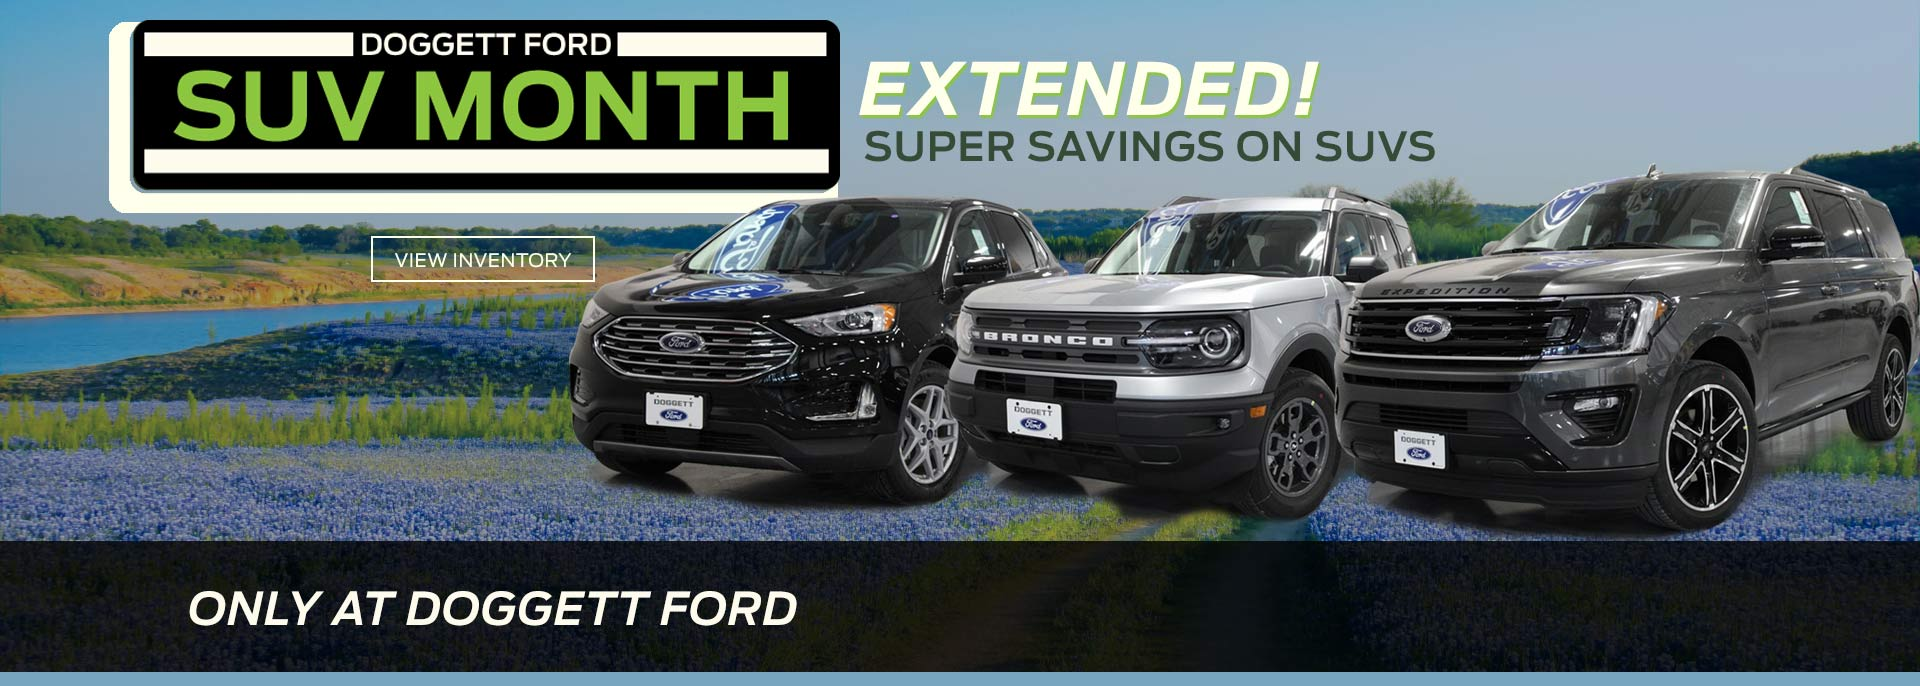 Suv Month Super Savings Extended Wide Hero Green Cta Doggett Ford 1920w